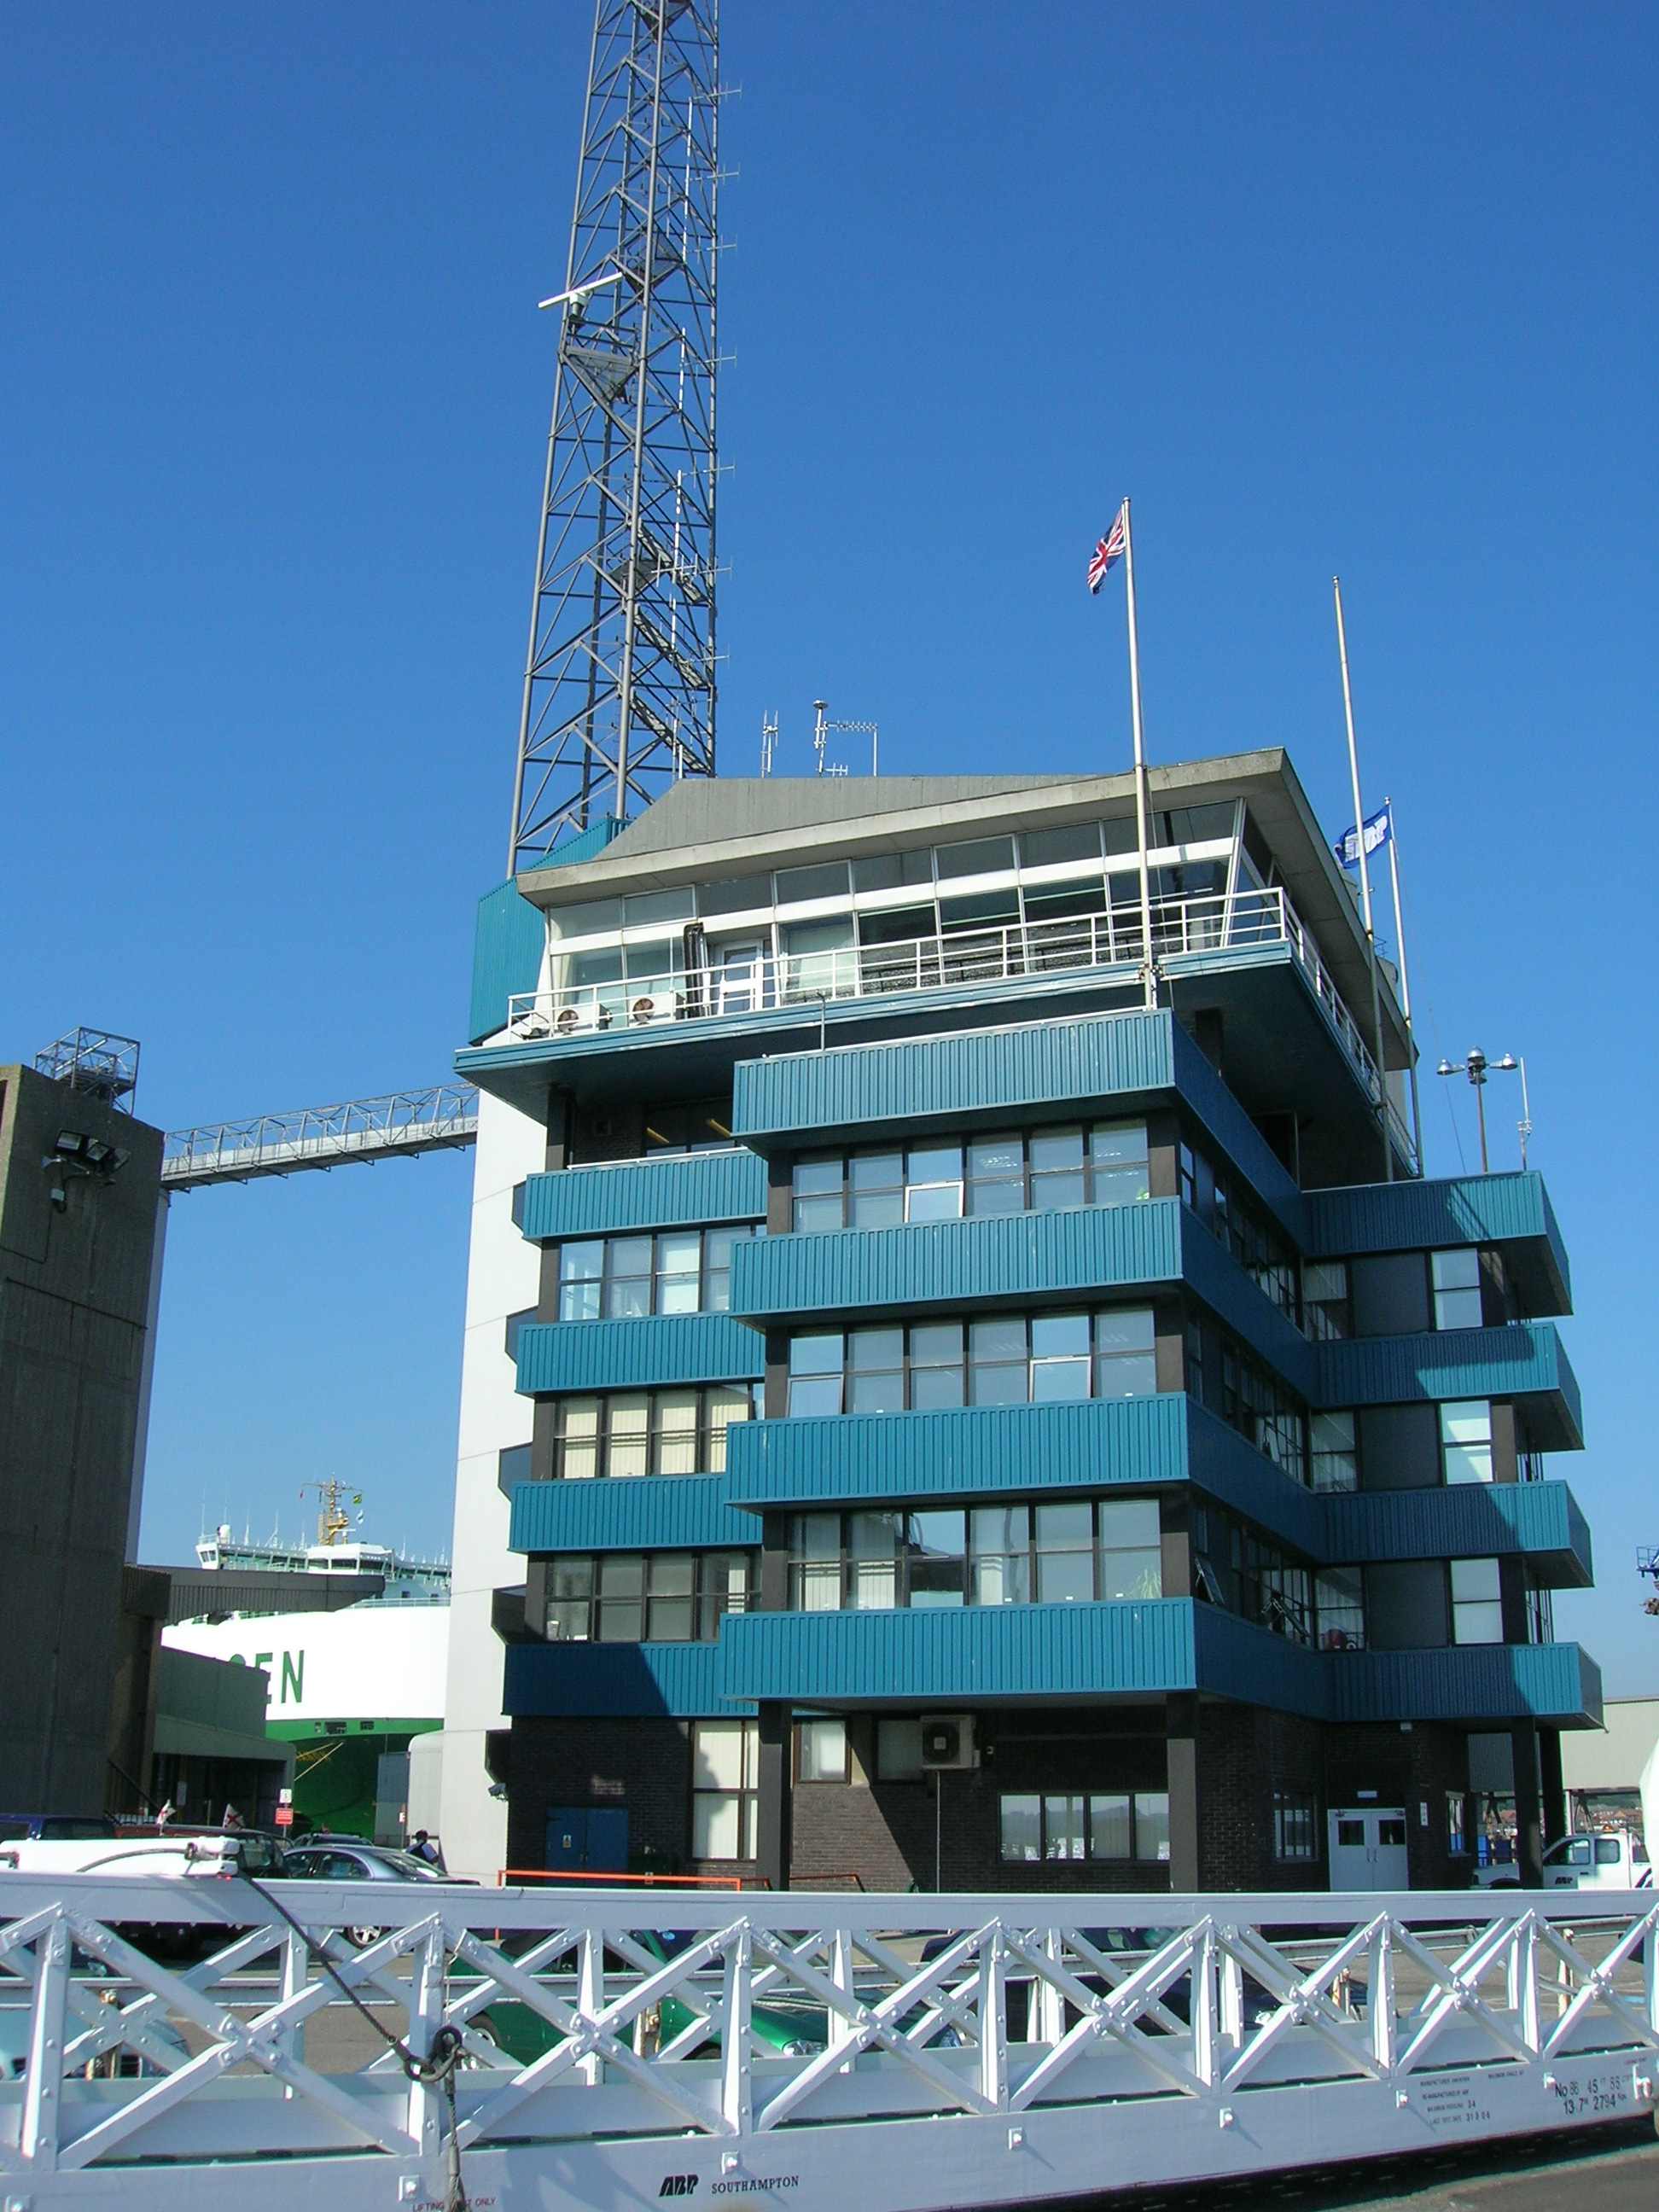 Control tower of Southampton docks.jpg